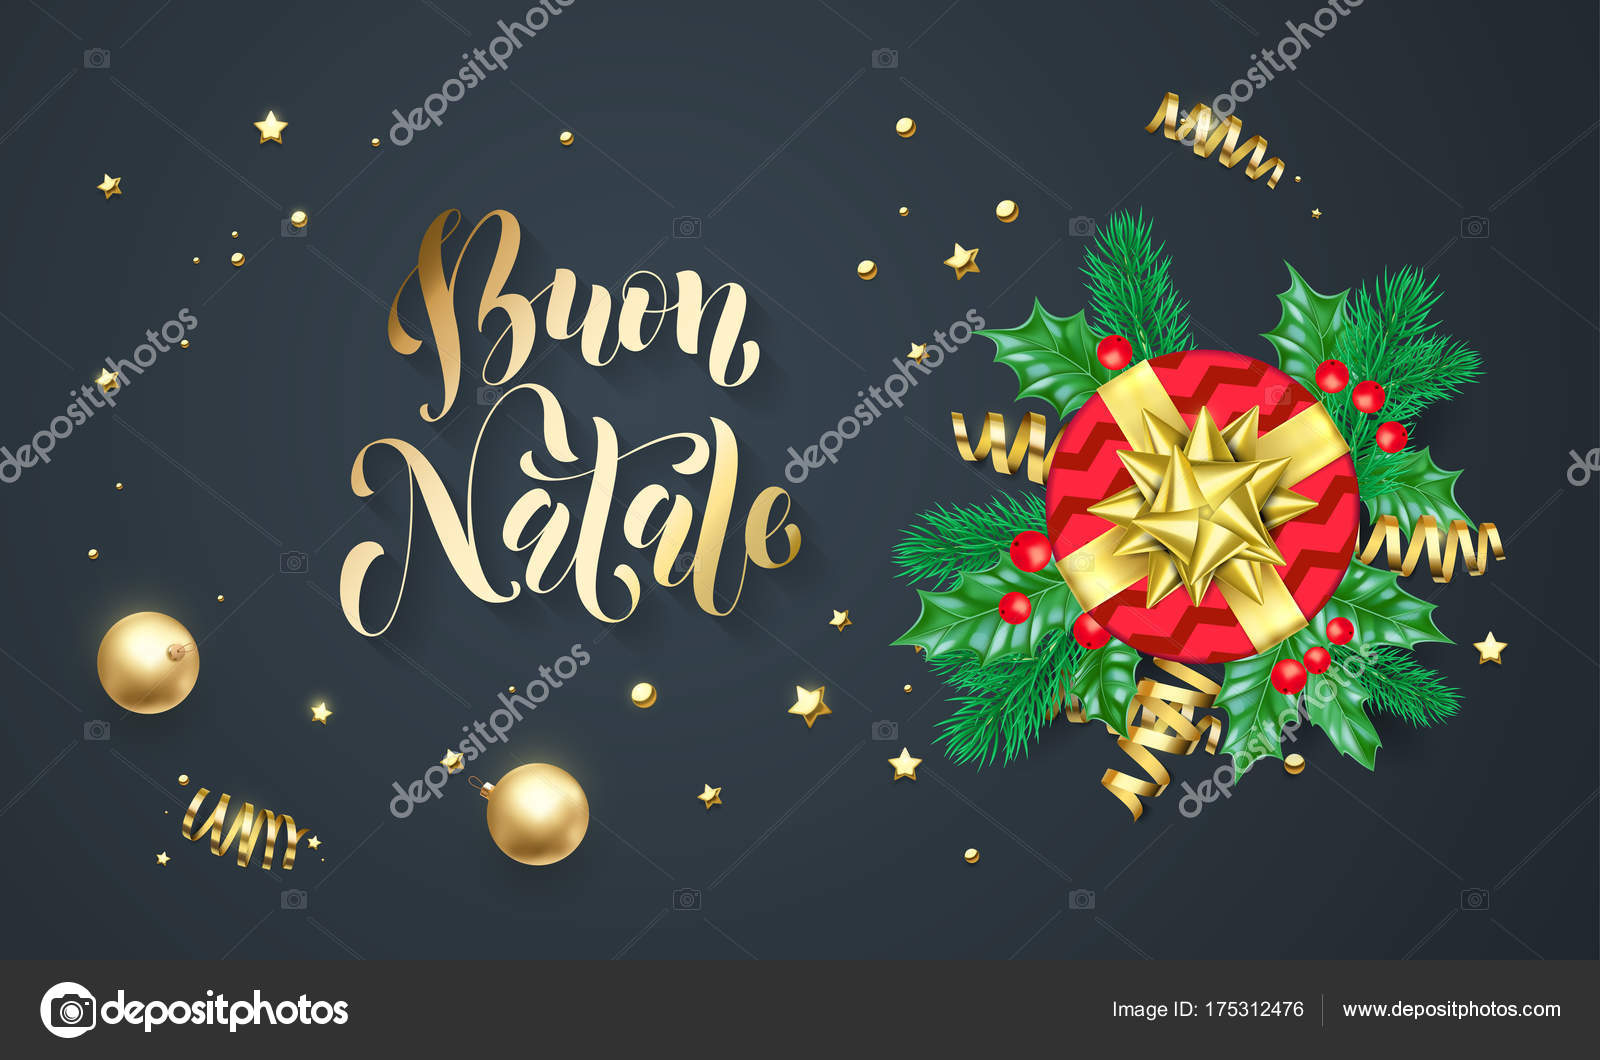 Buon Natale Italian Merry Christmas Holiday Golden Calligraphy And